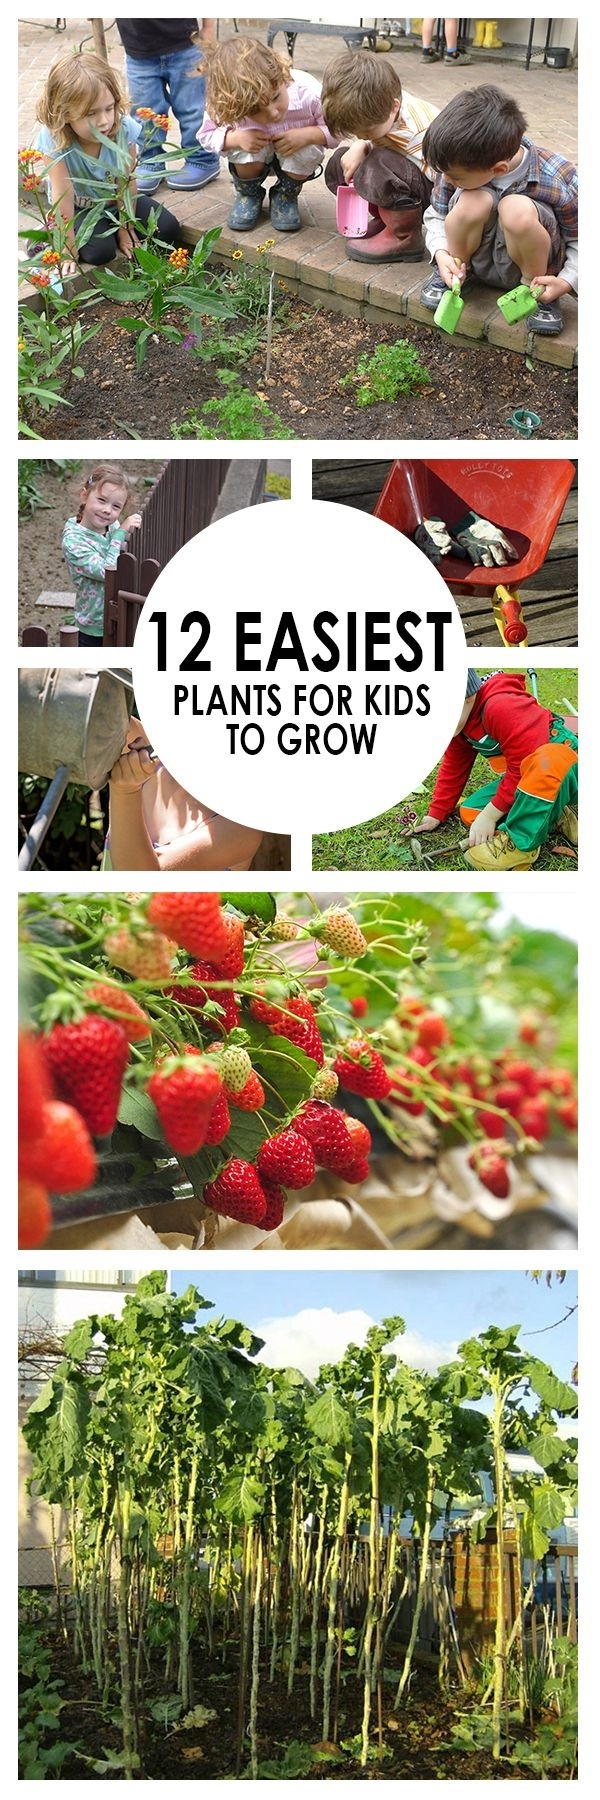 25+ Best Ideas About Planting Plants On Pinterest | Growing Plants intended for Garden Of Light Natural Foods Avon Ct